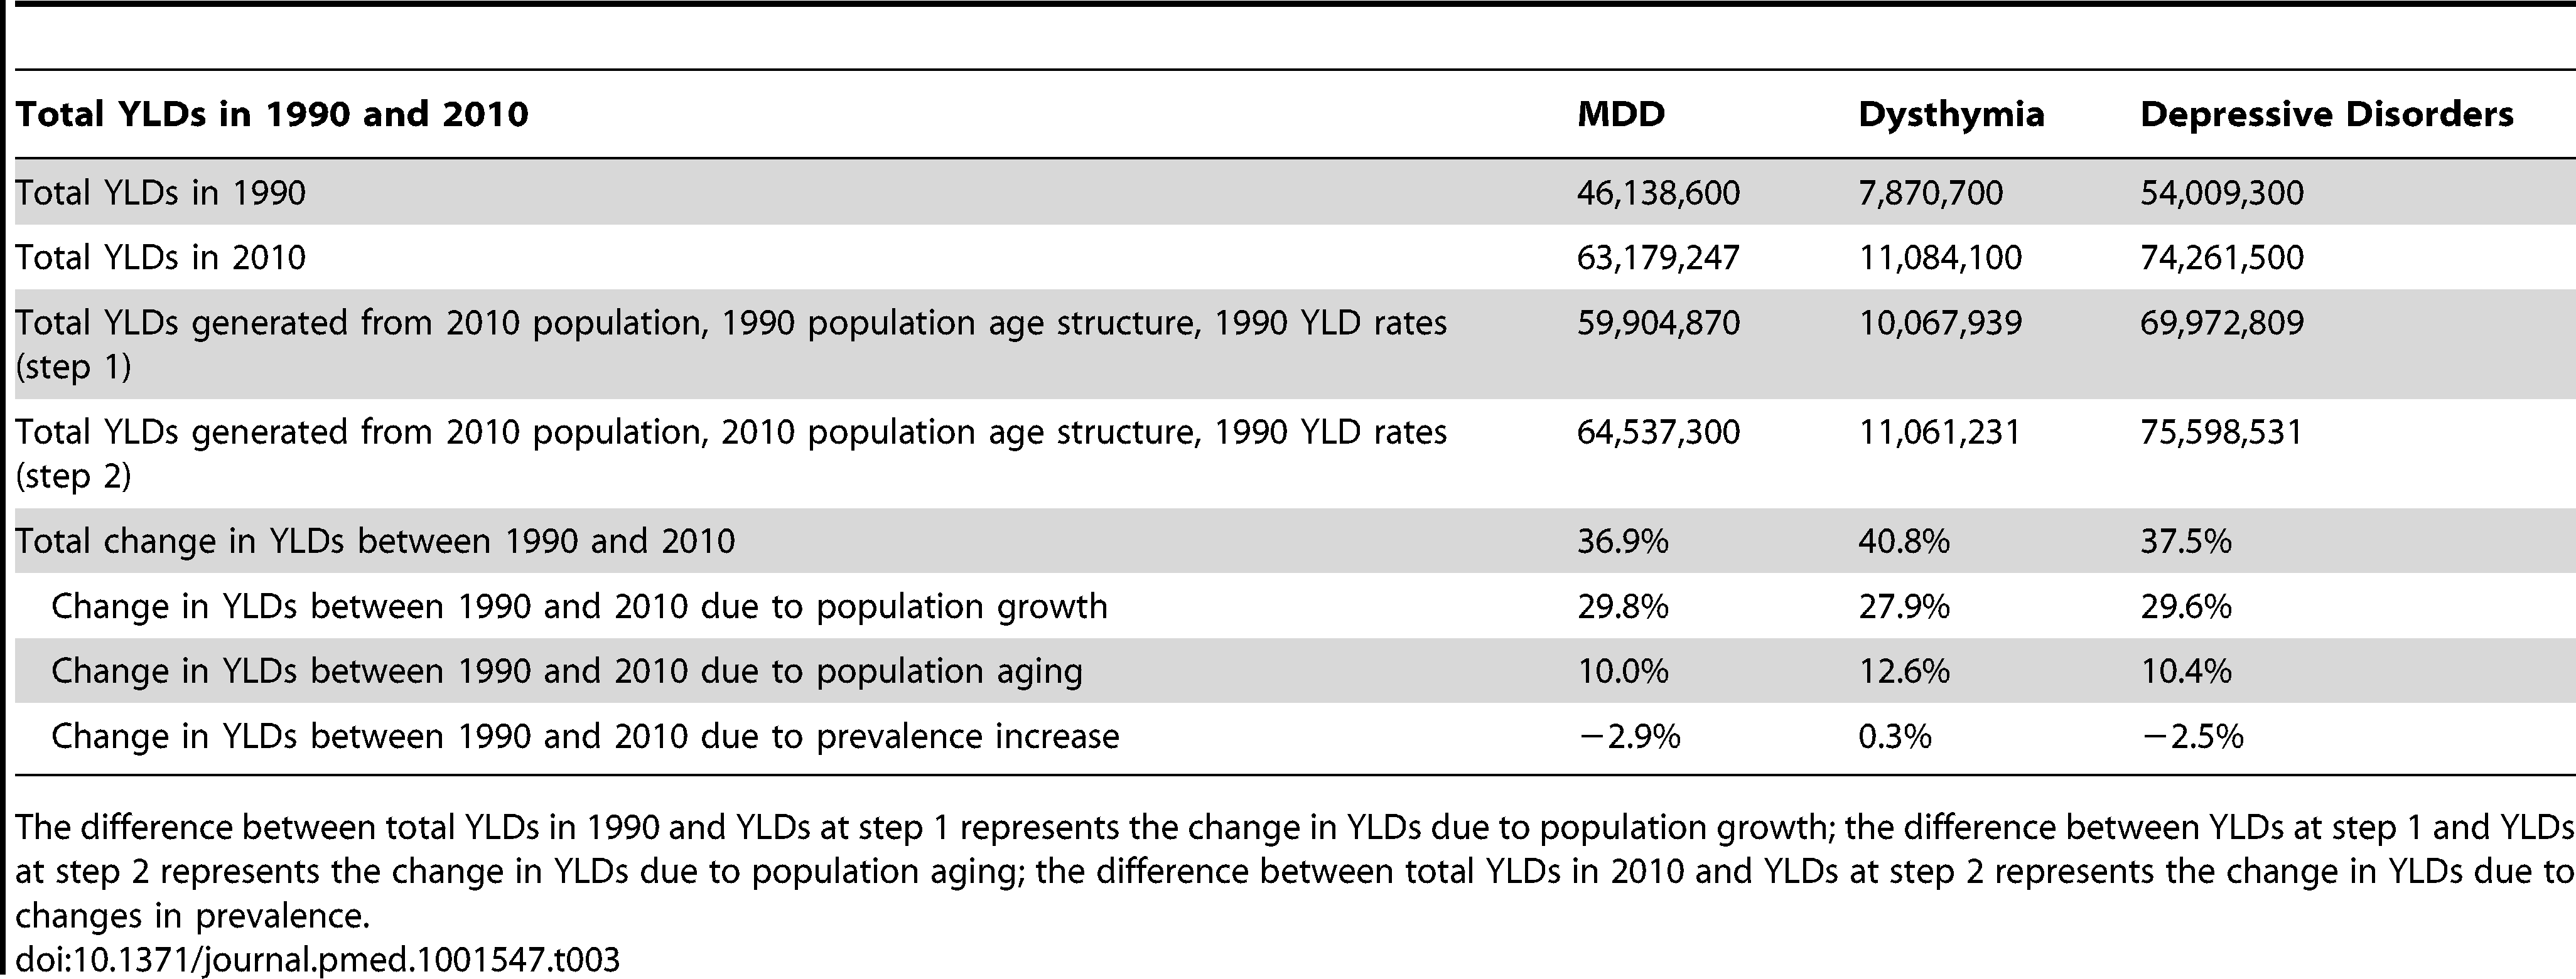 Change in depressive disorder YLDs between 1990 and 2010.